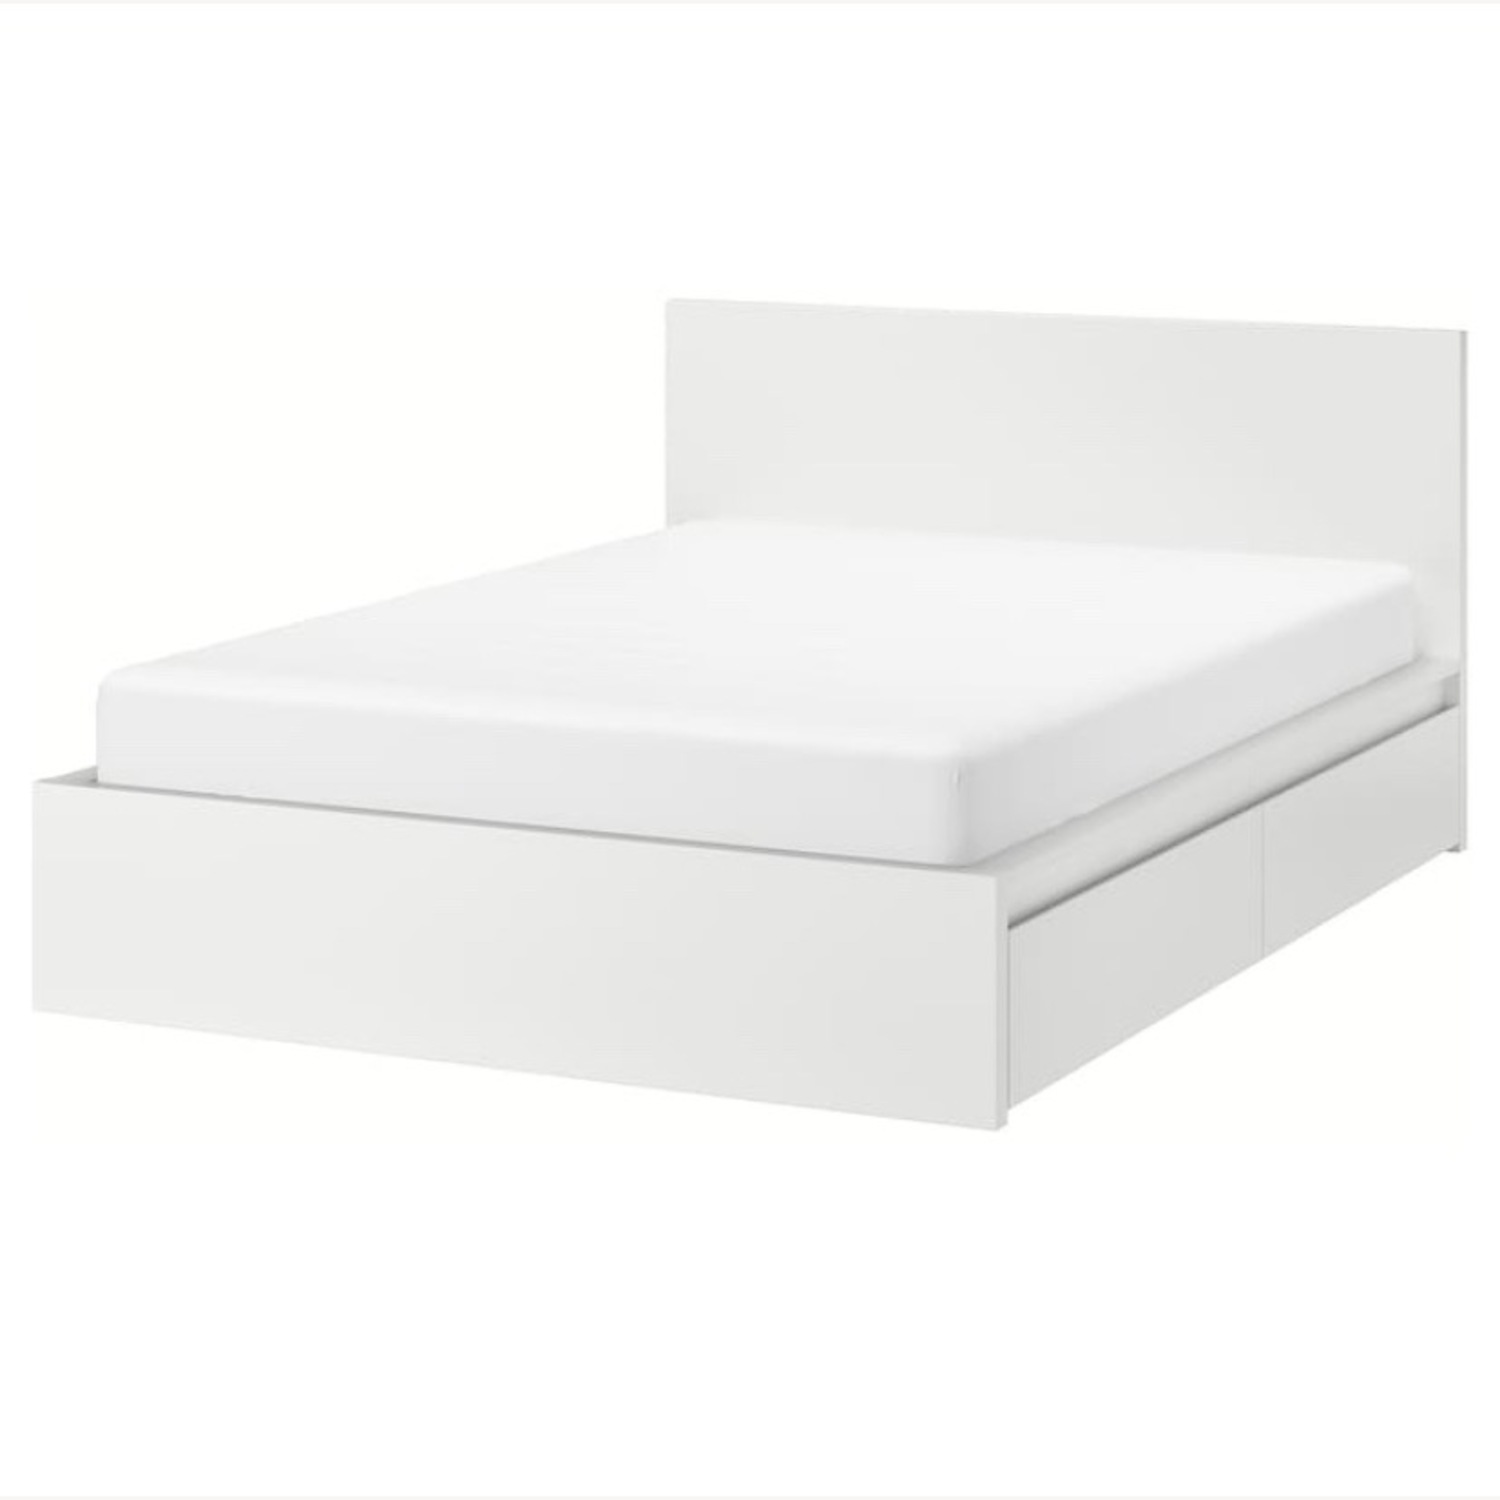 IKEA Malm High Full Bed Frame with Storage Boxes - image-4